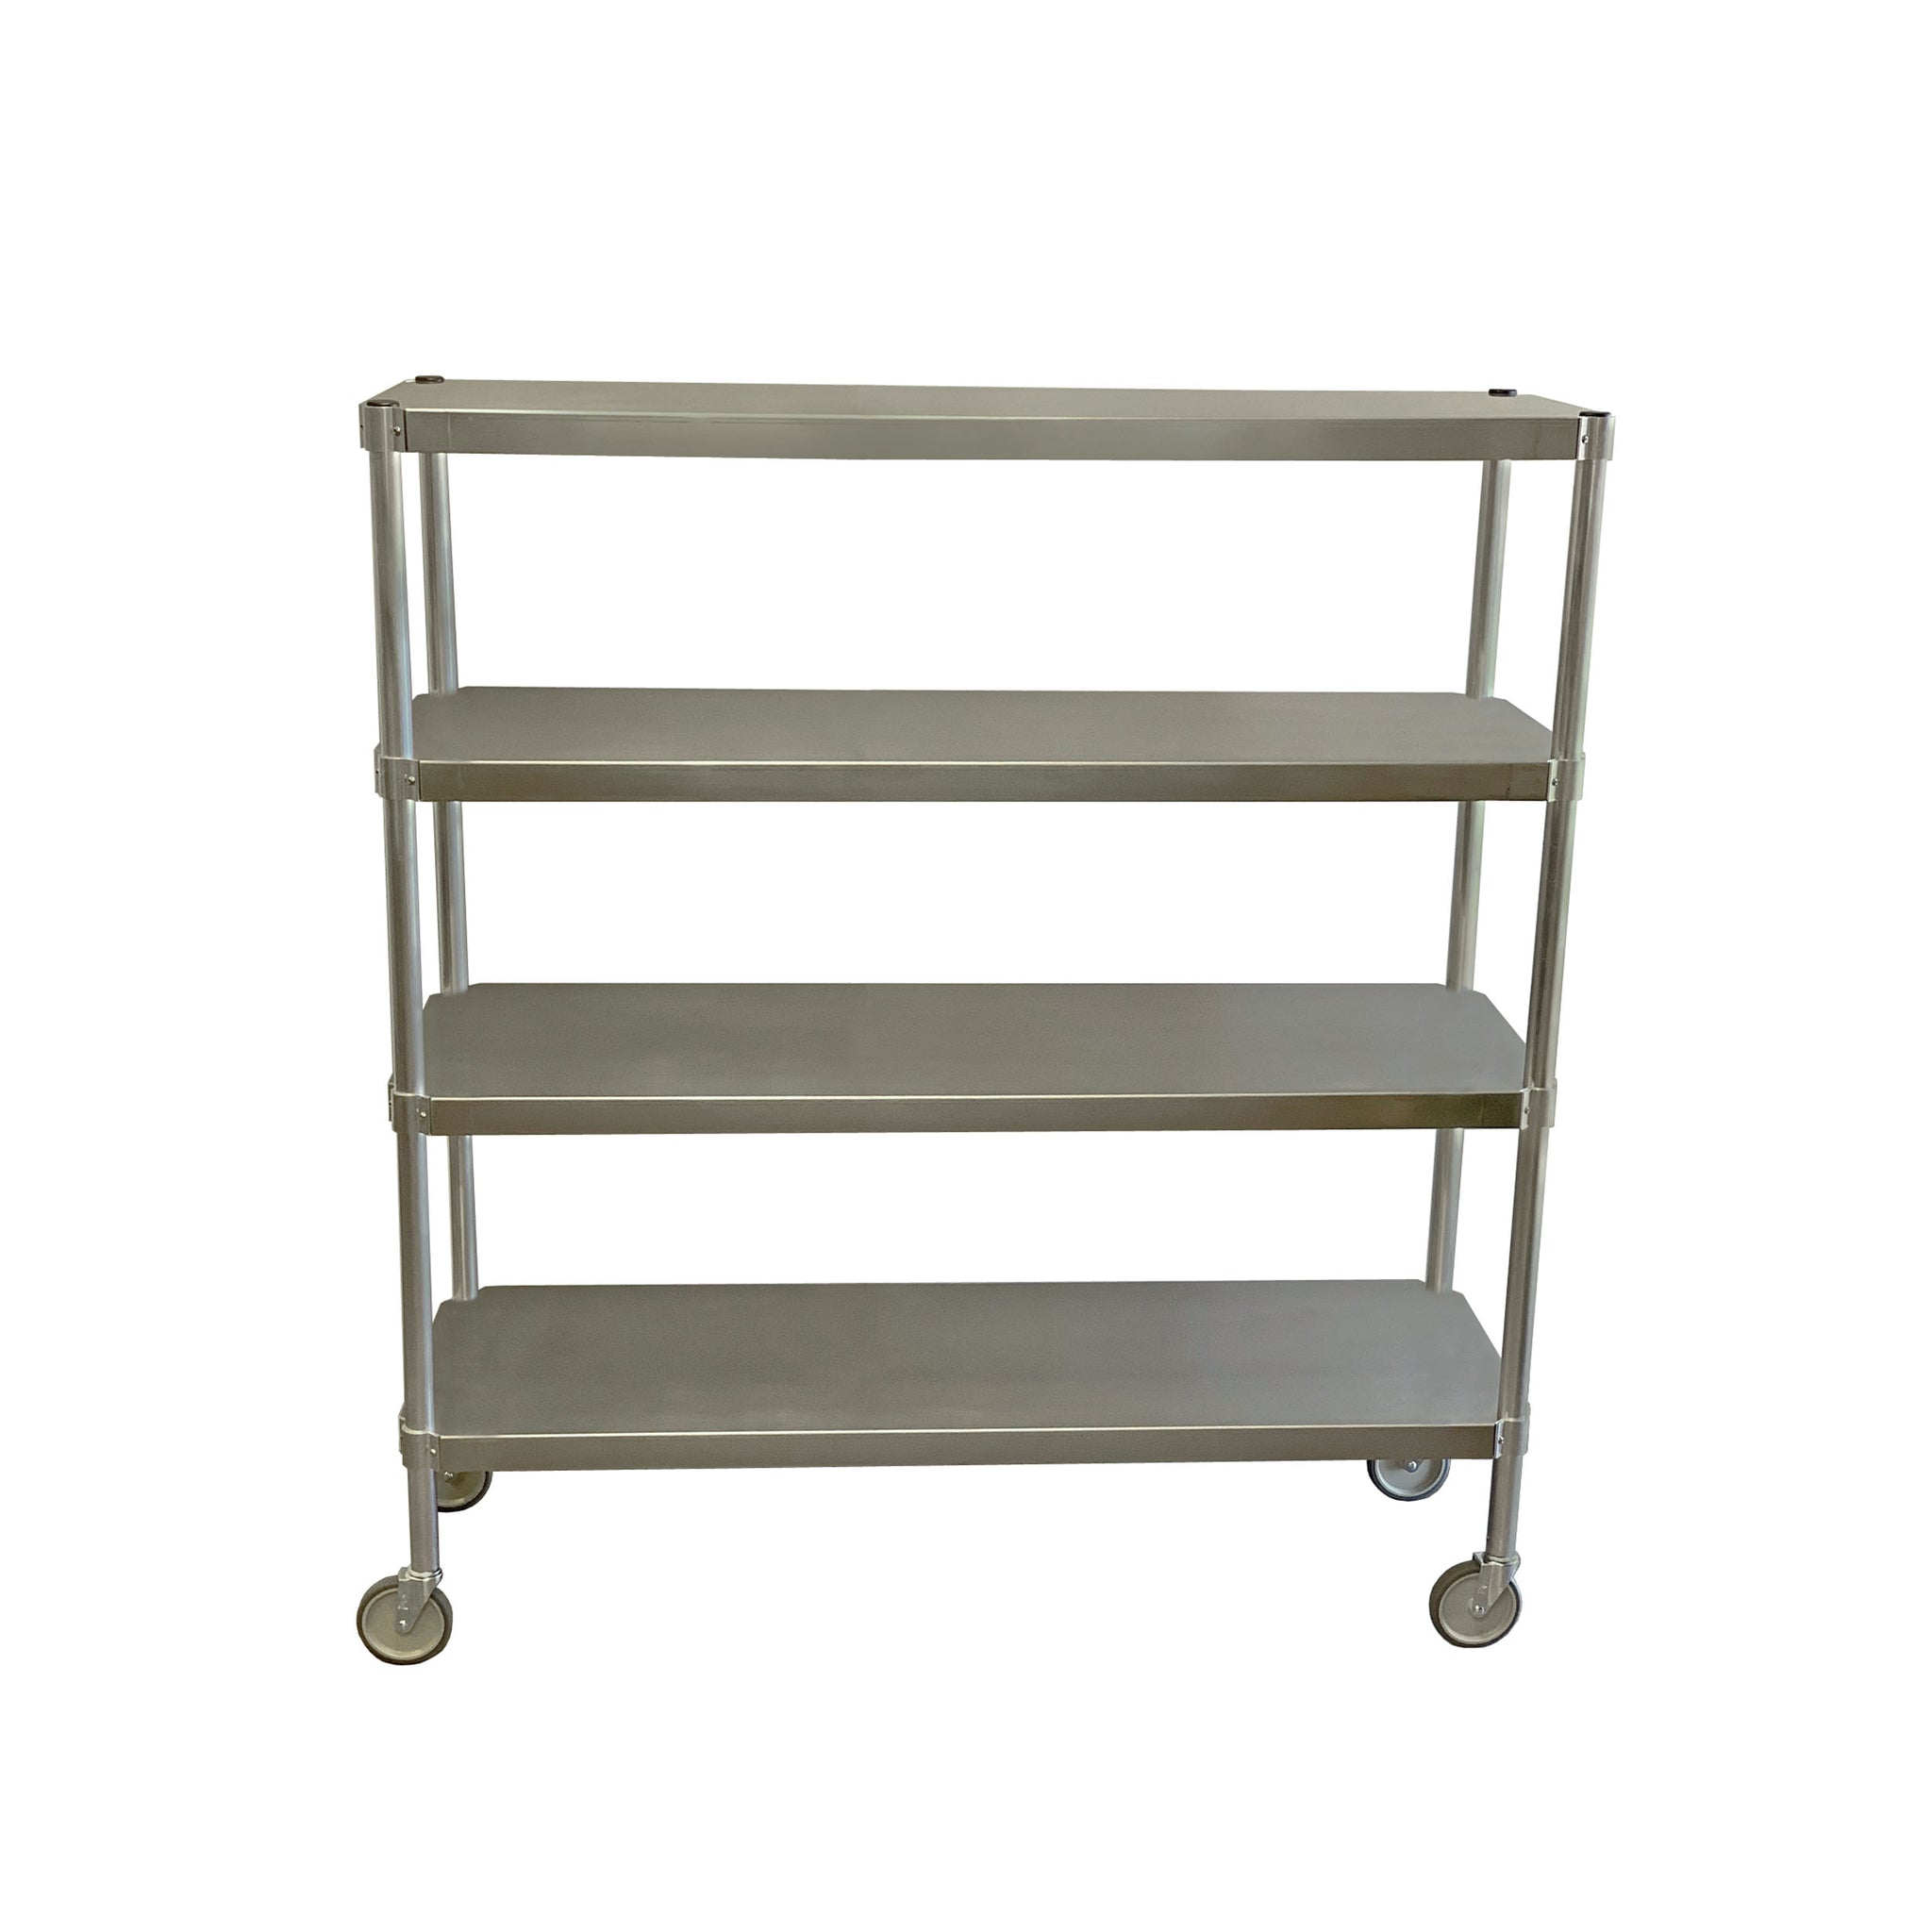 PVI Food Service Mobile Stainless Steel Shelving Unit